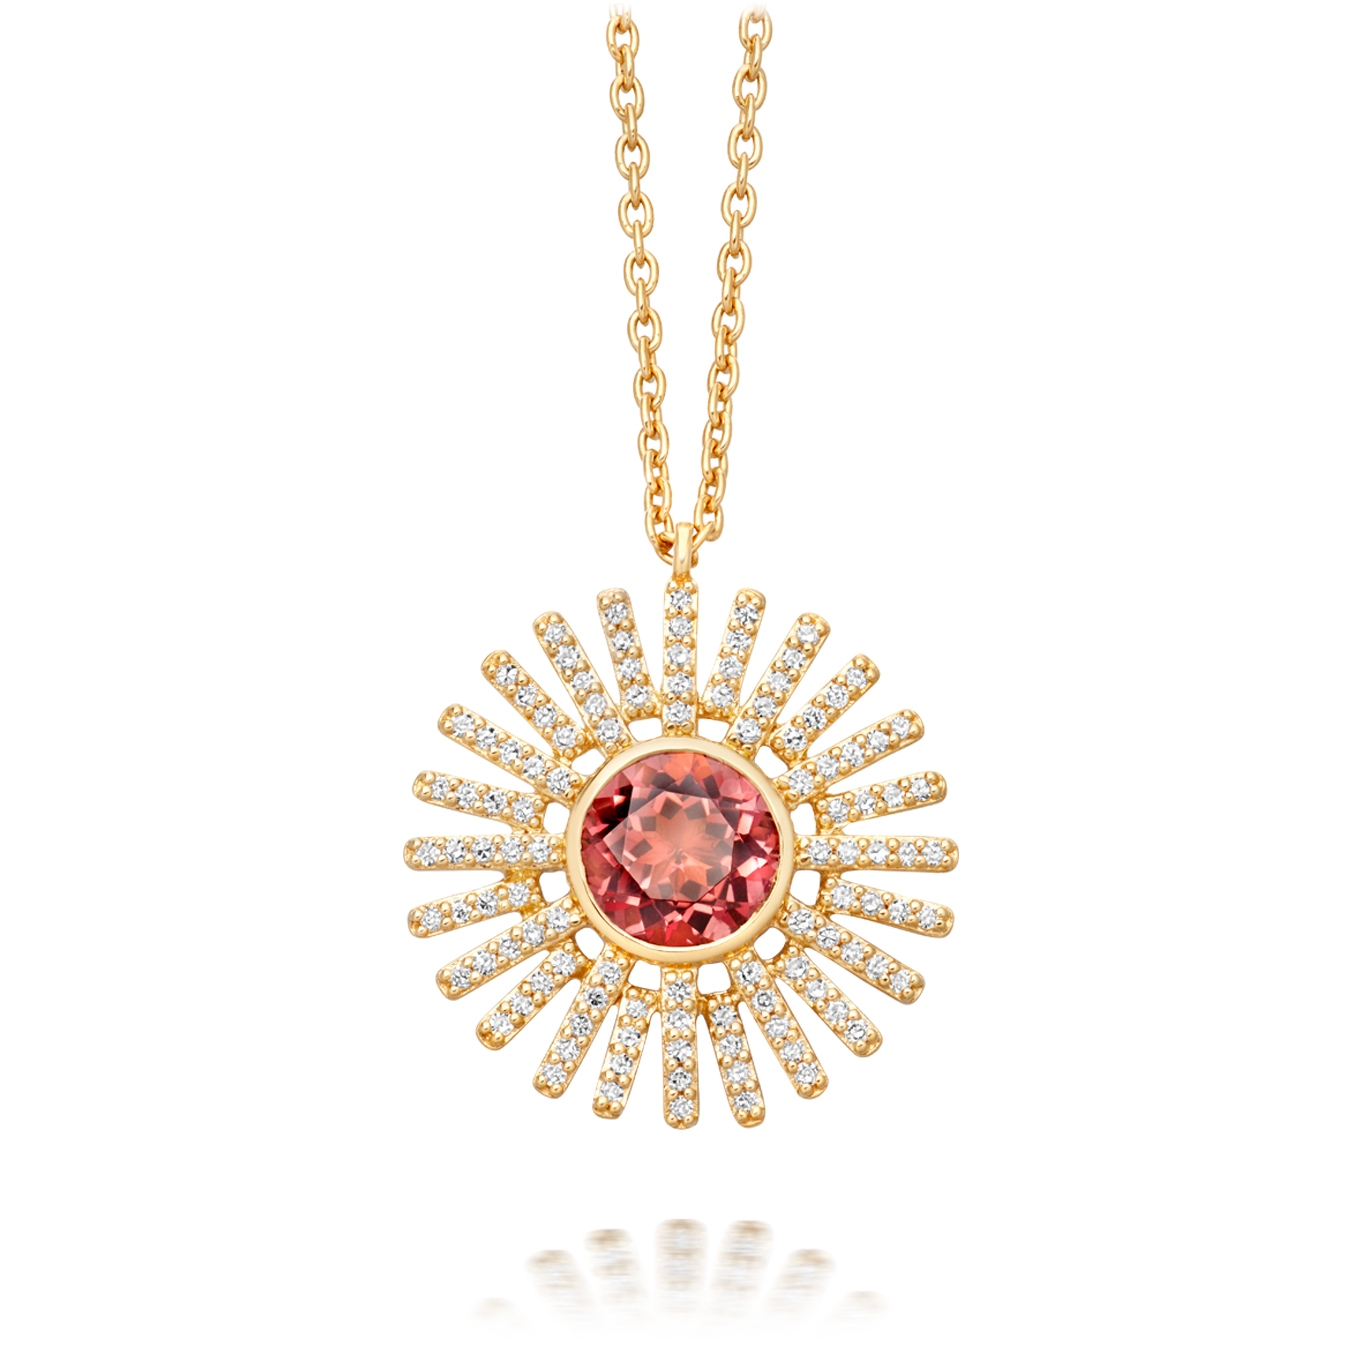 Pink Tourmaline Rising Sun Pendant Necklace